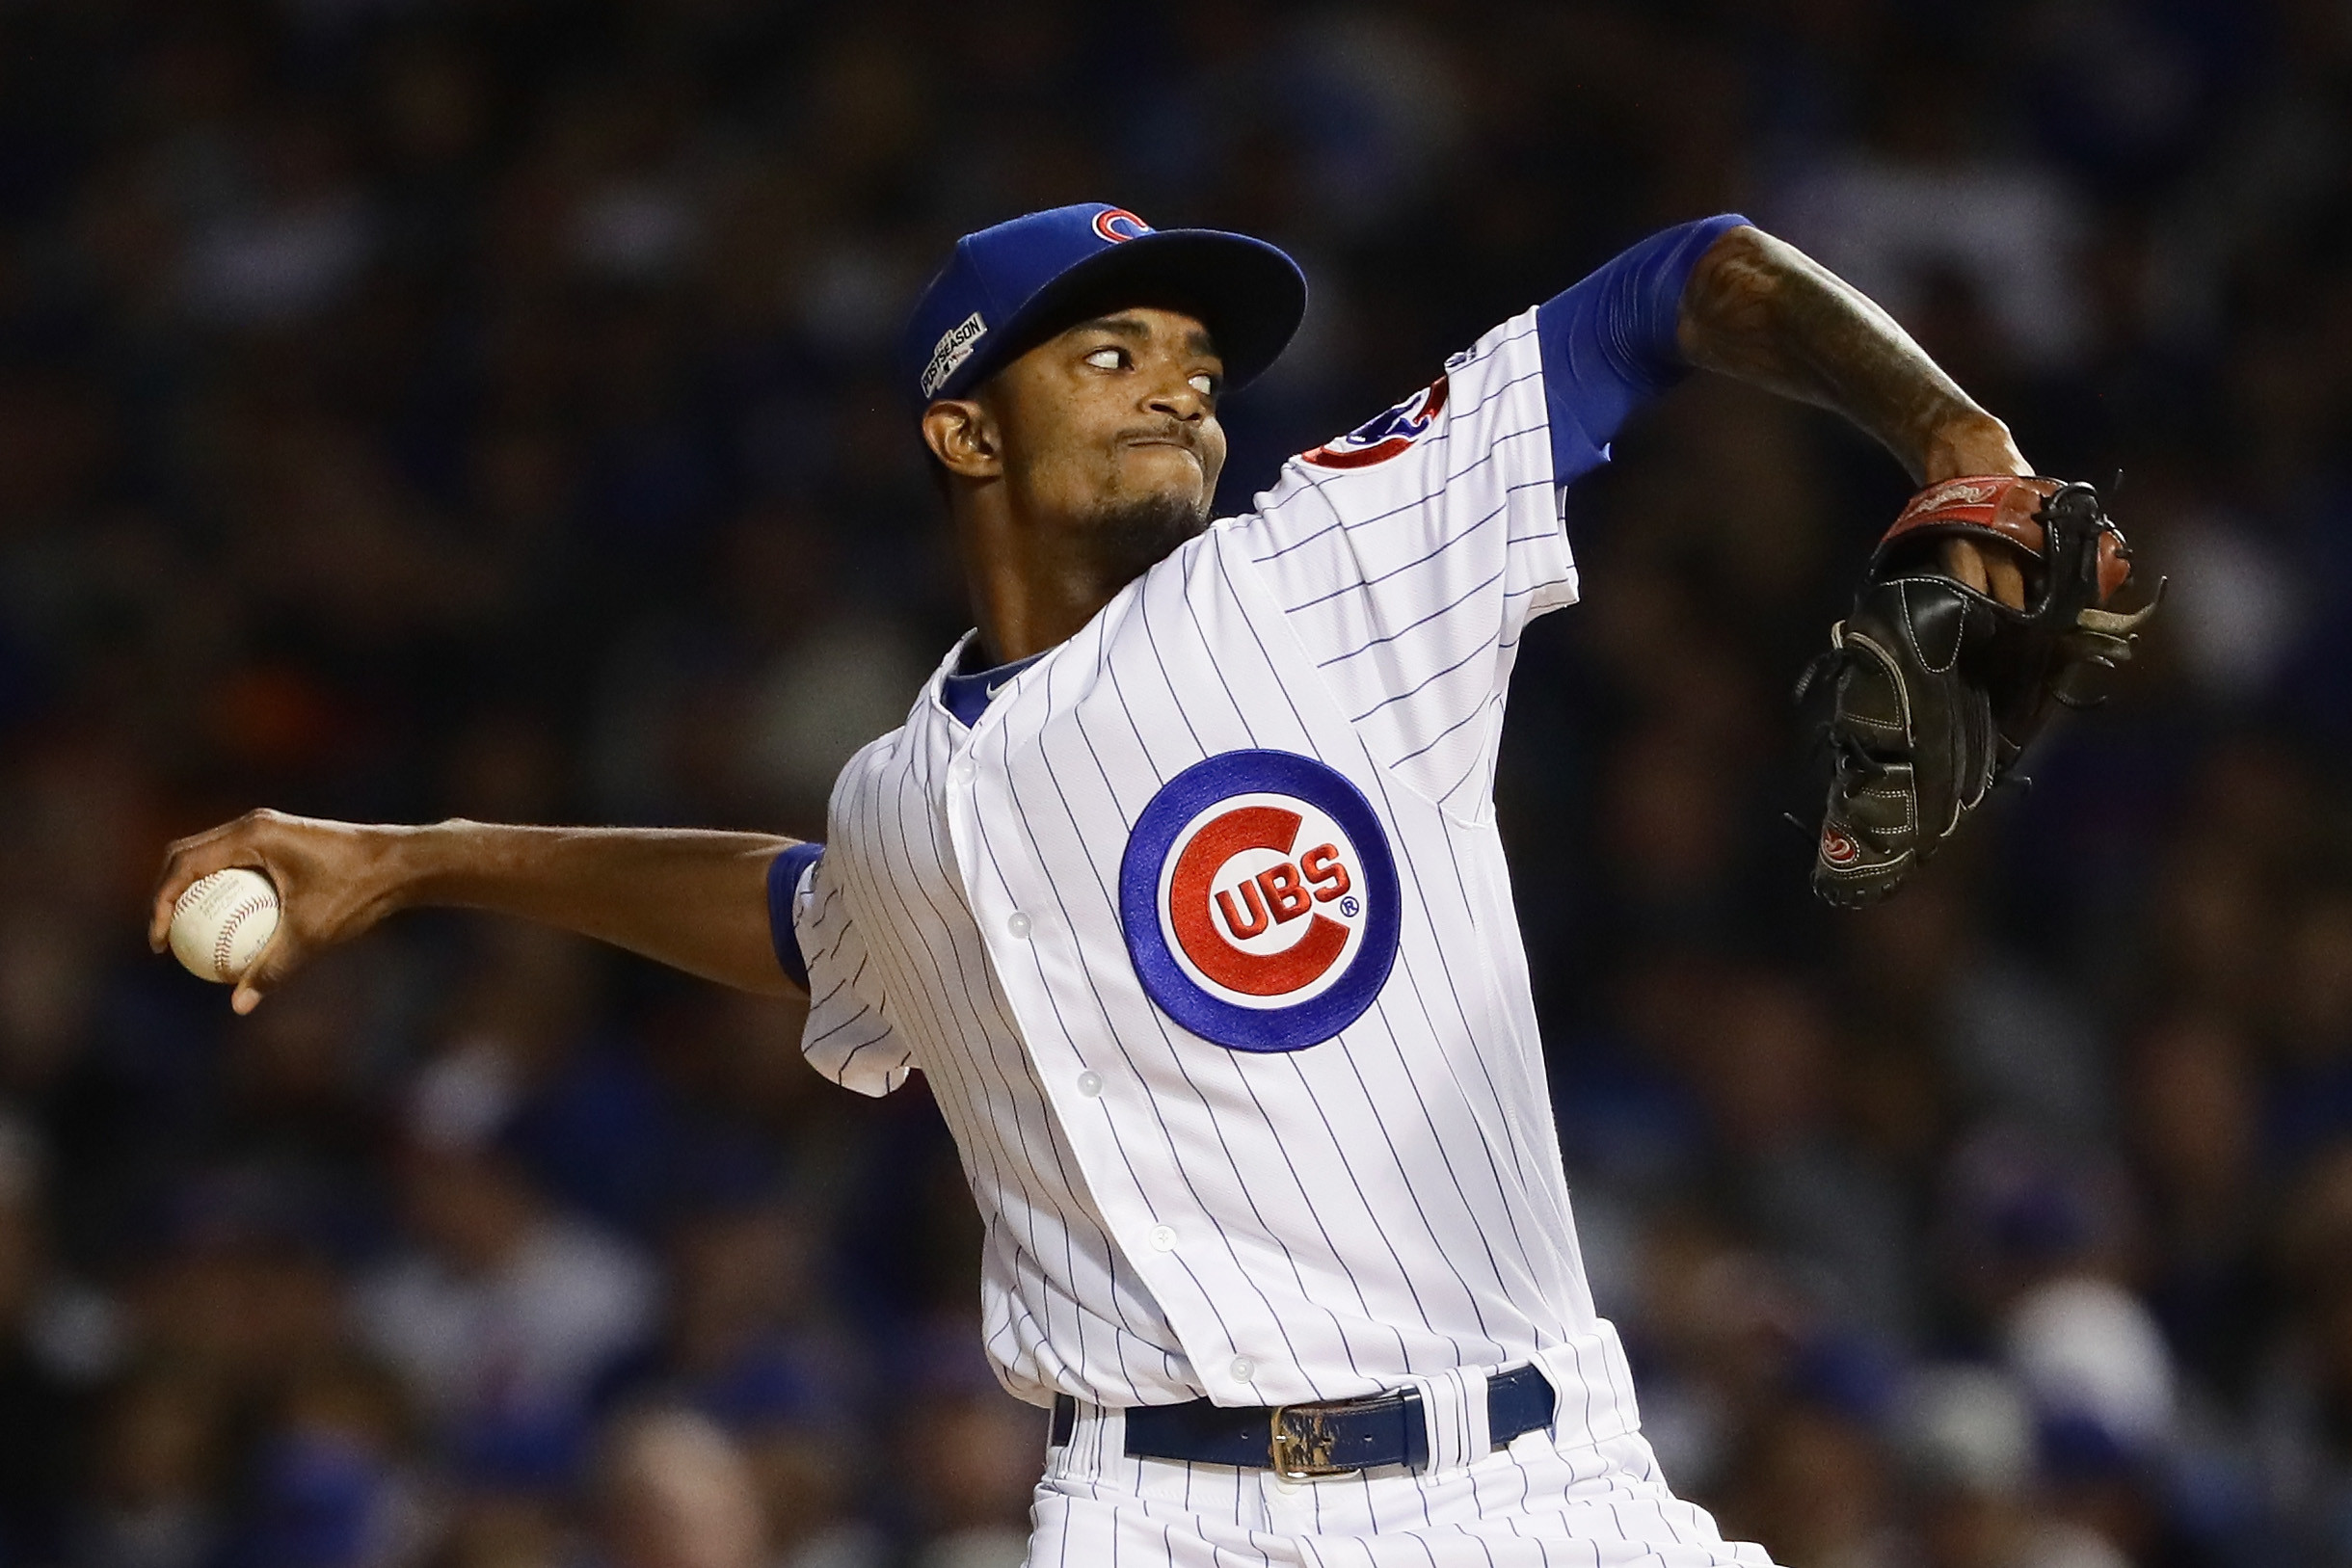 Res: 2440x1627, Carl Edwards Jr., RHP